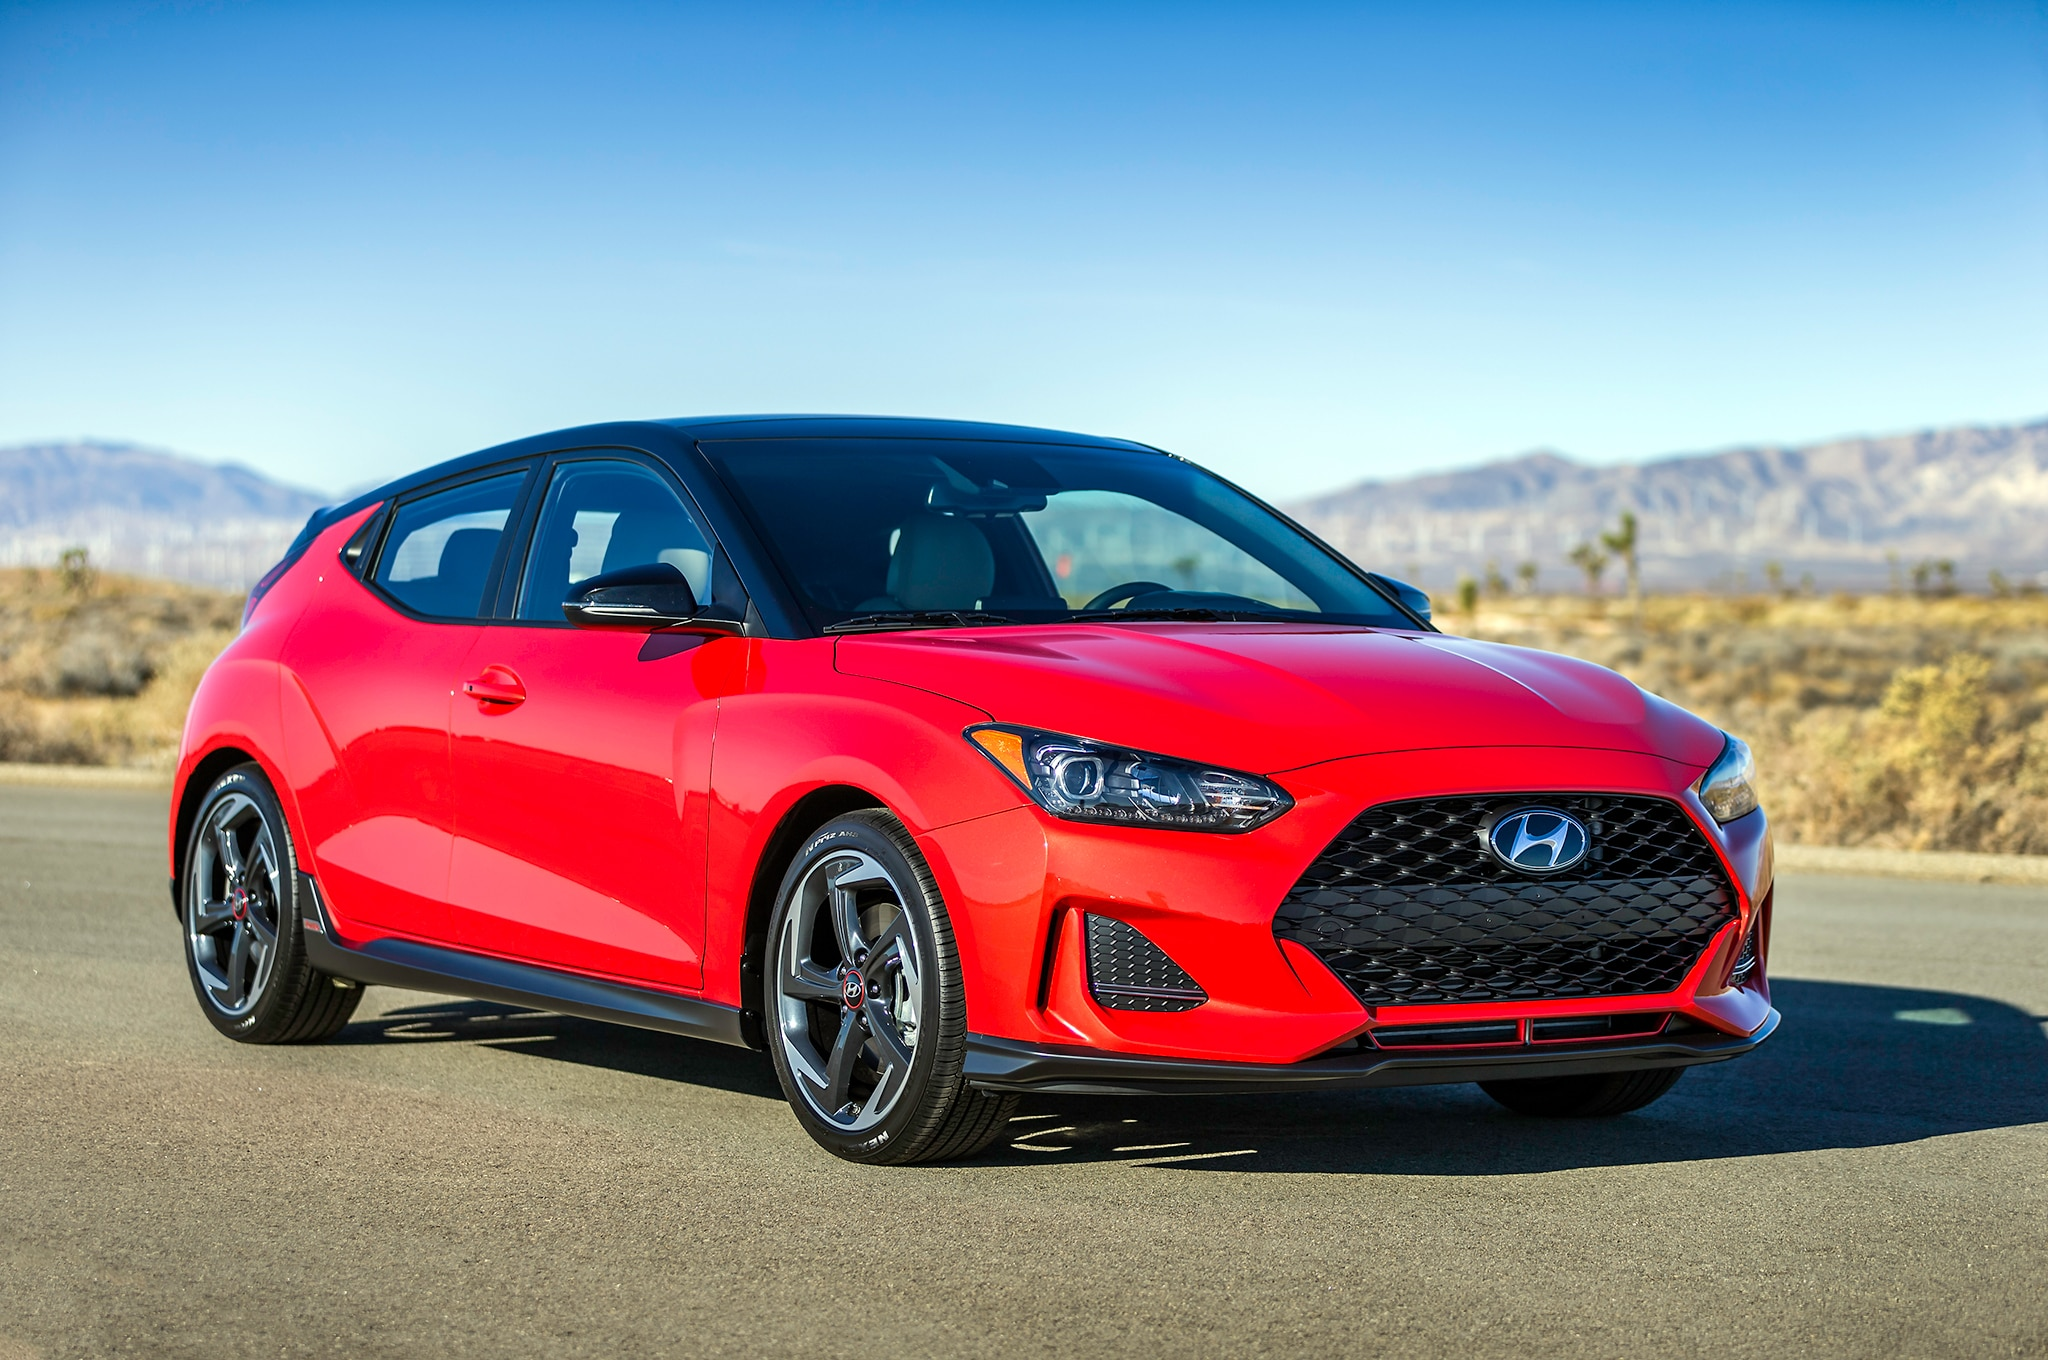 2019 Hyundai Veloster Turbo Front Three Quarter 04